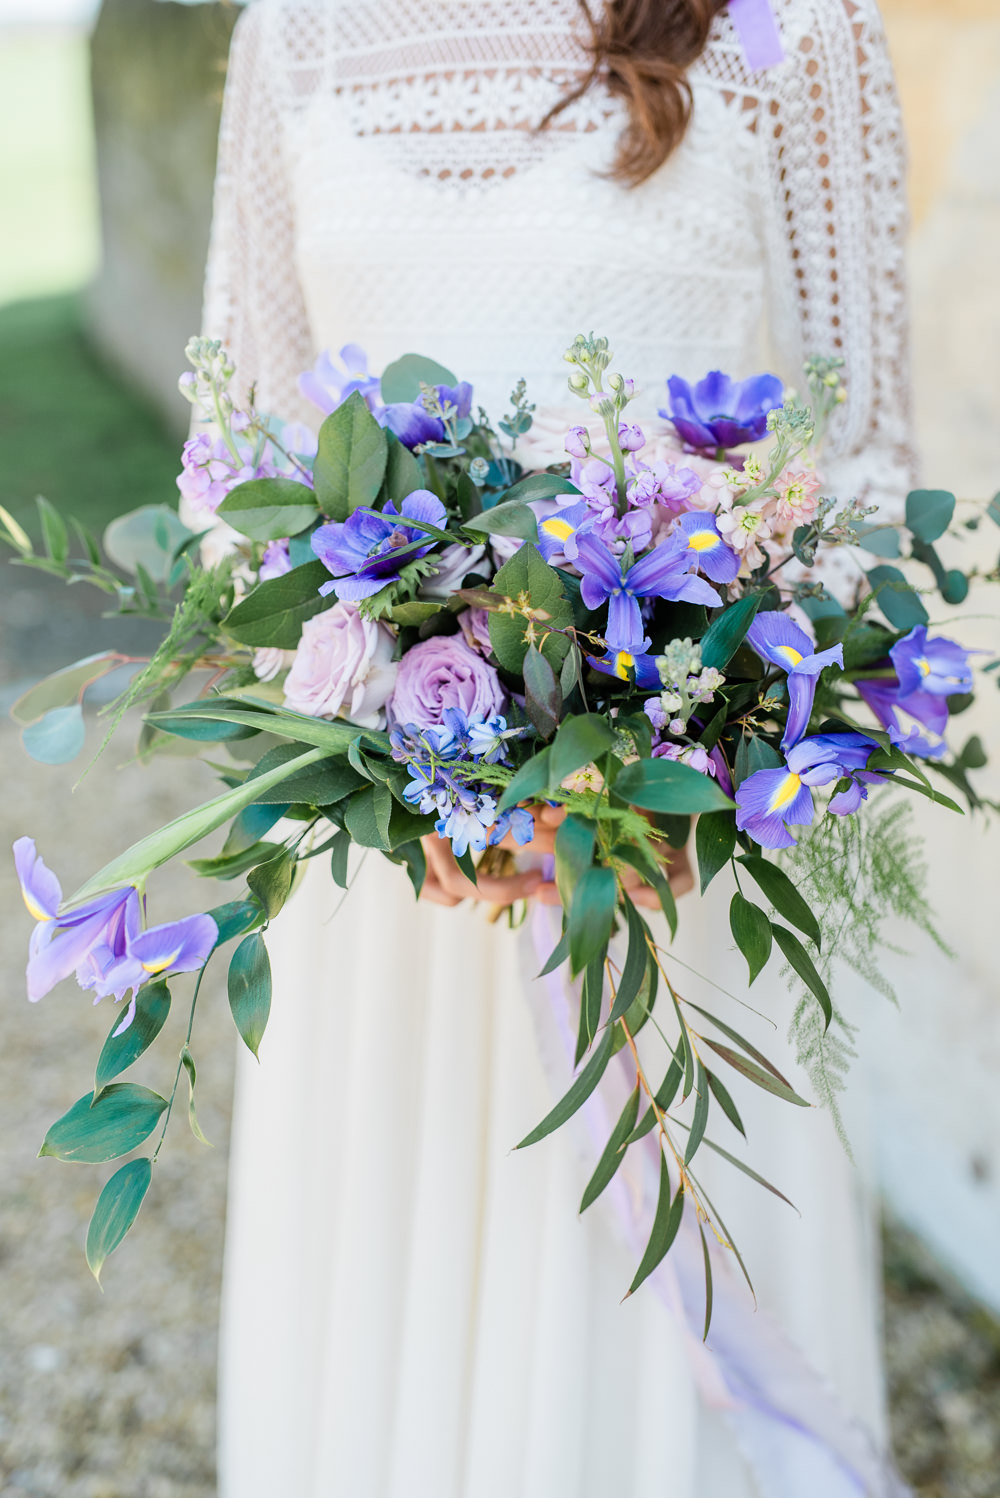 Bouquet Flowers Bride Bridal Purple Lilac Iris Rose Greenery Foliage Ultra Violet Wedding Moon Gate Flower Arch Captured by Katrina Photography